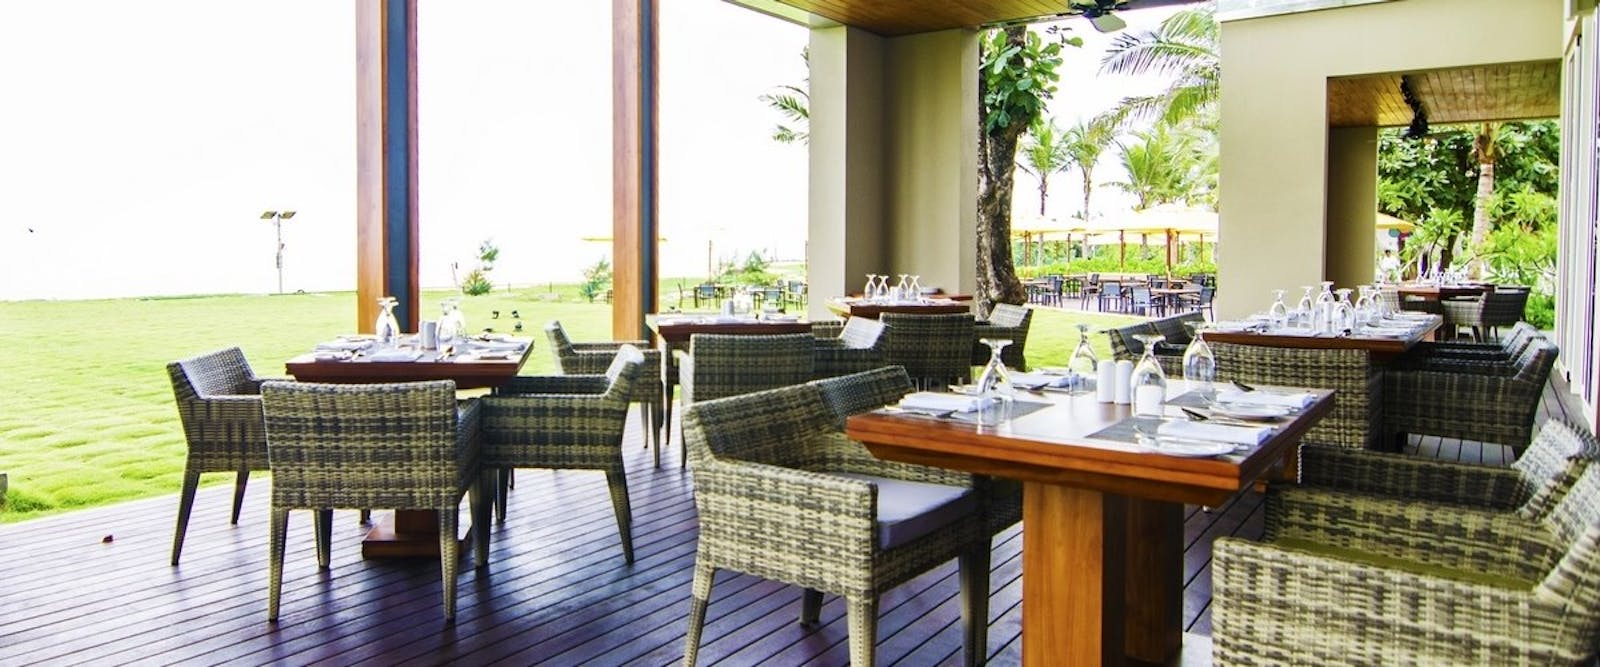 Dining area at Heritance Negombo